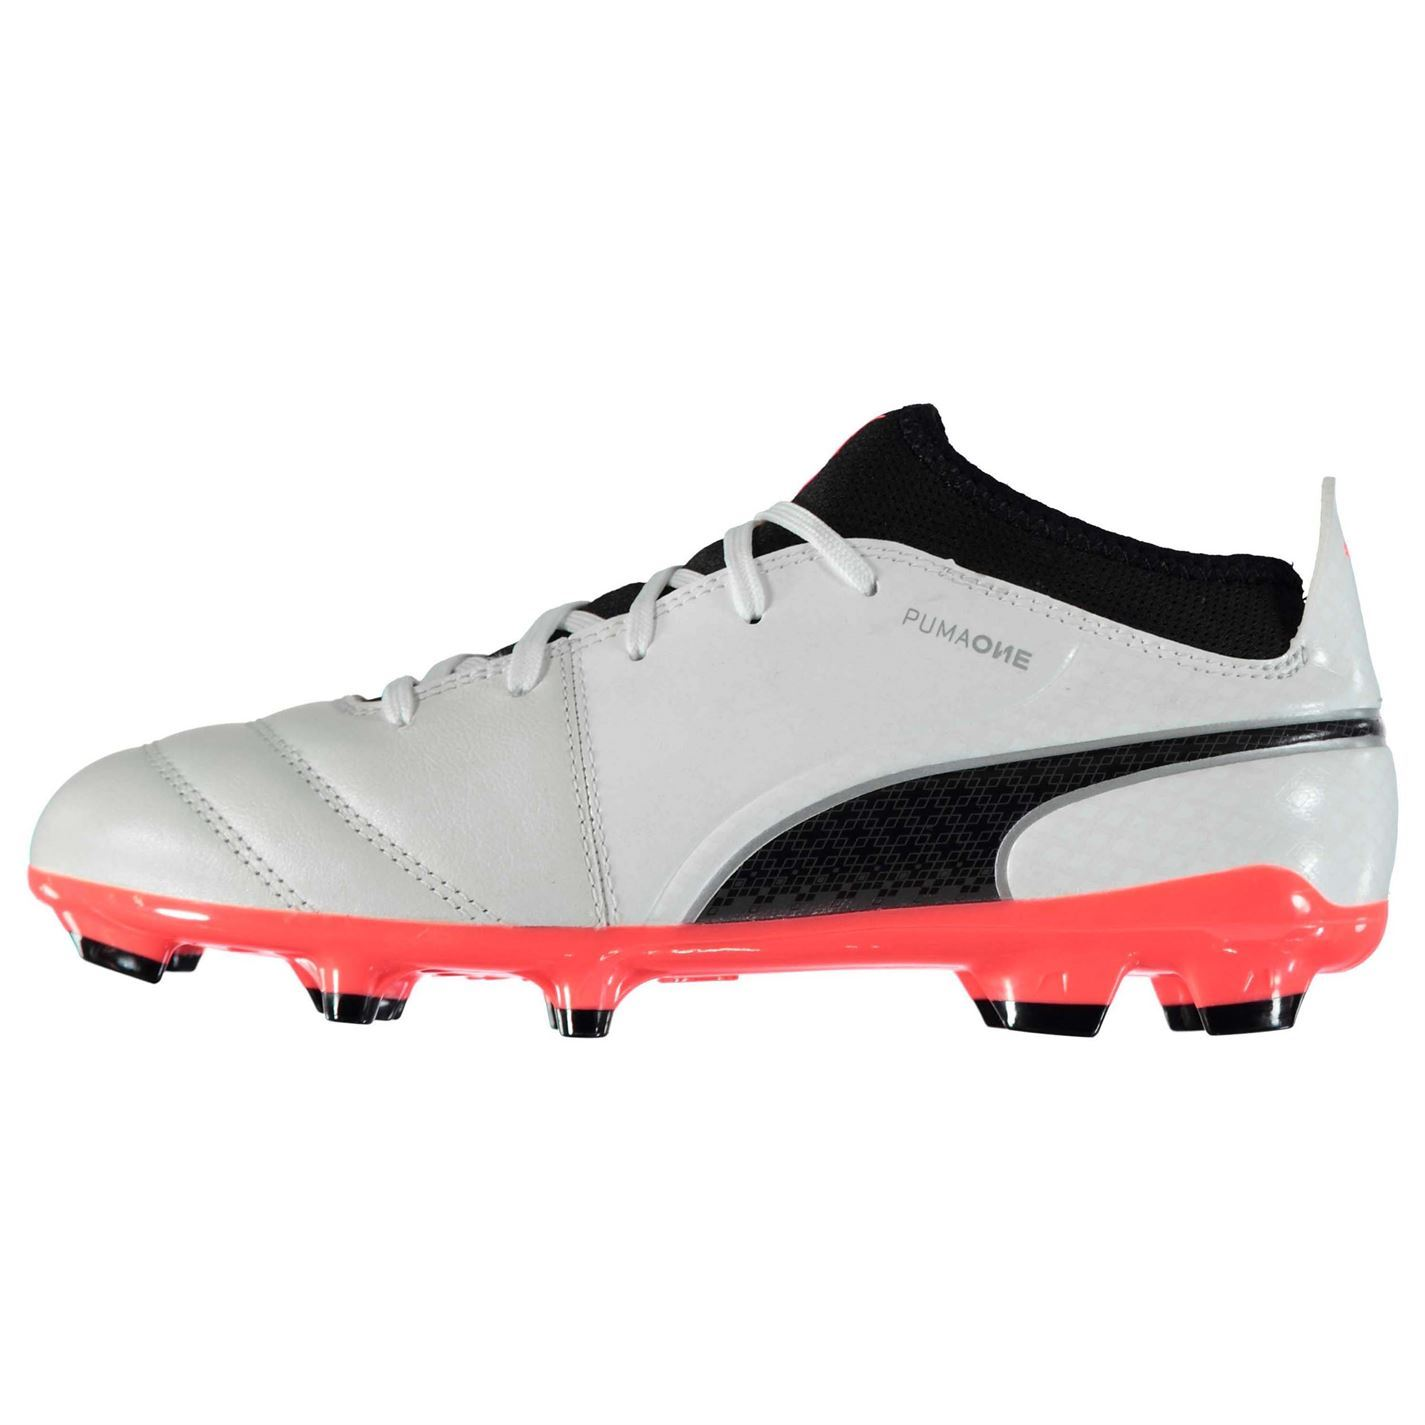 406b86f1a ... Puma One 17.3 FG Firm Ground Football Boots Childs White Coral Soccer  Cleats ...